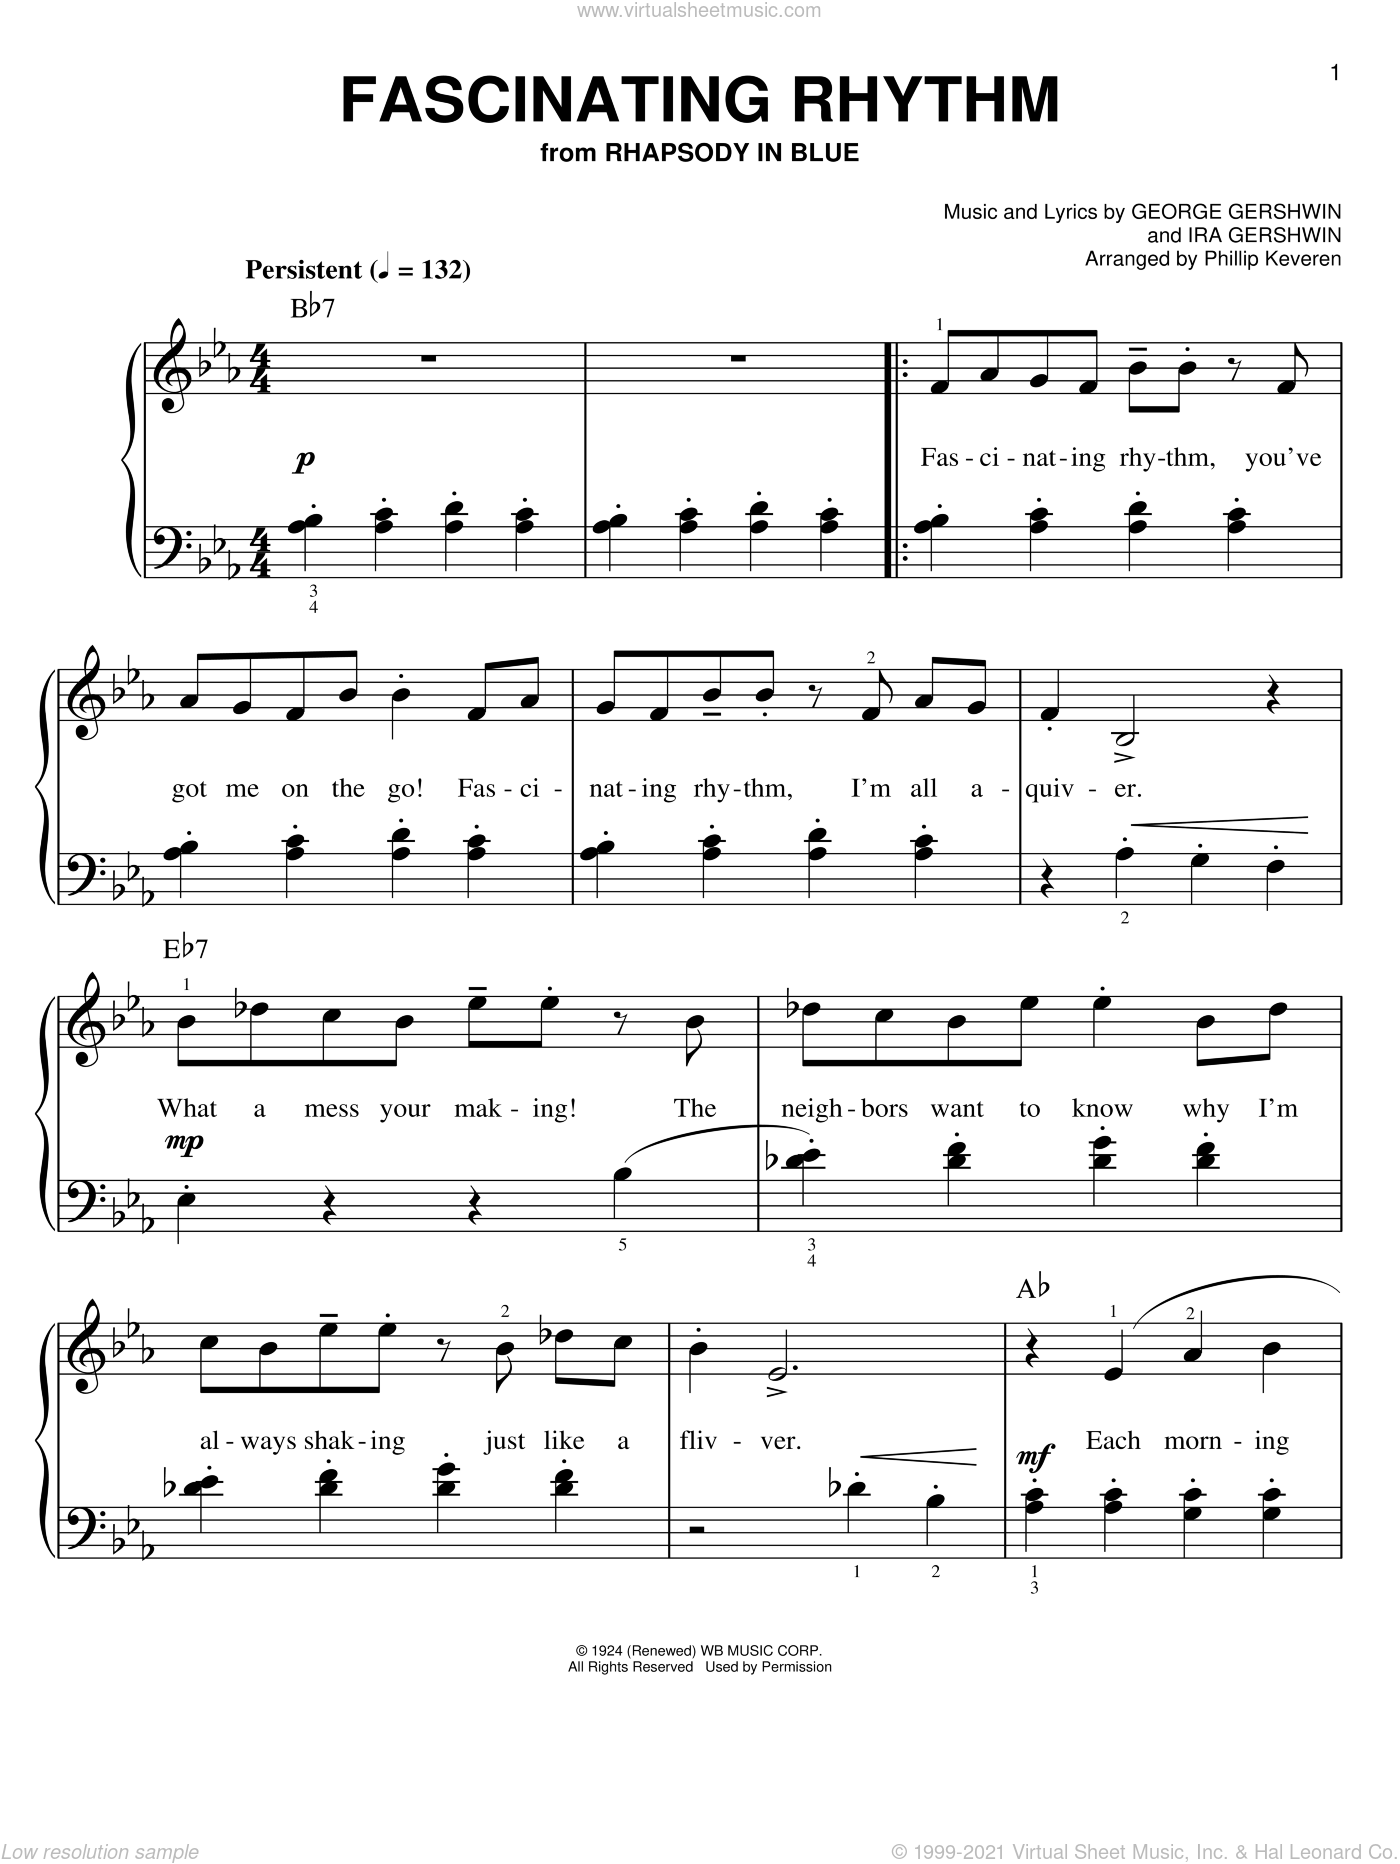 Fascinating Rhythm sheet music for piano solo by Phillip Keveren, George Gershwin and Ira Gershwin, easy skill level